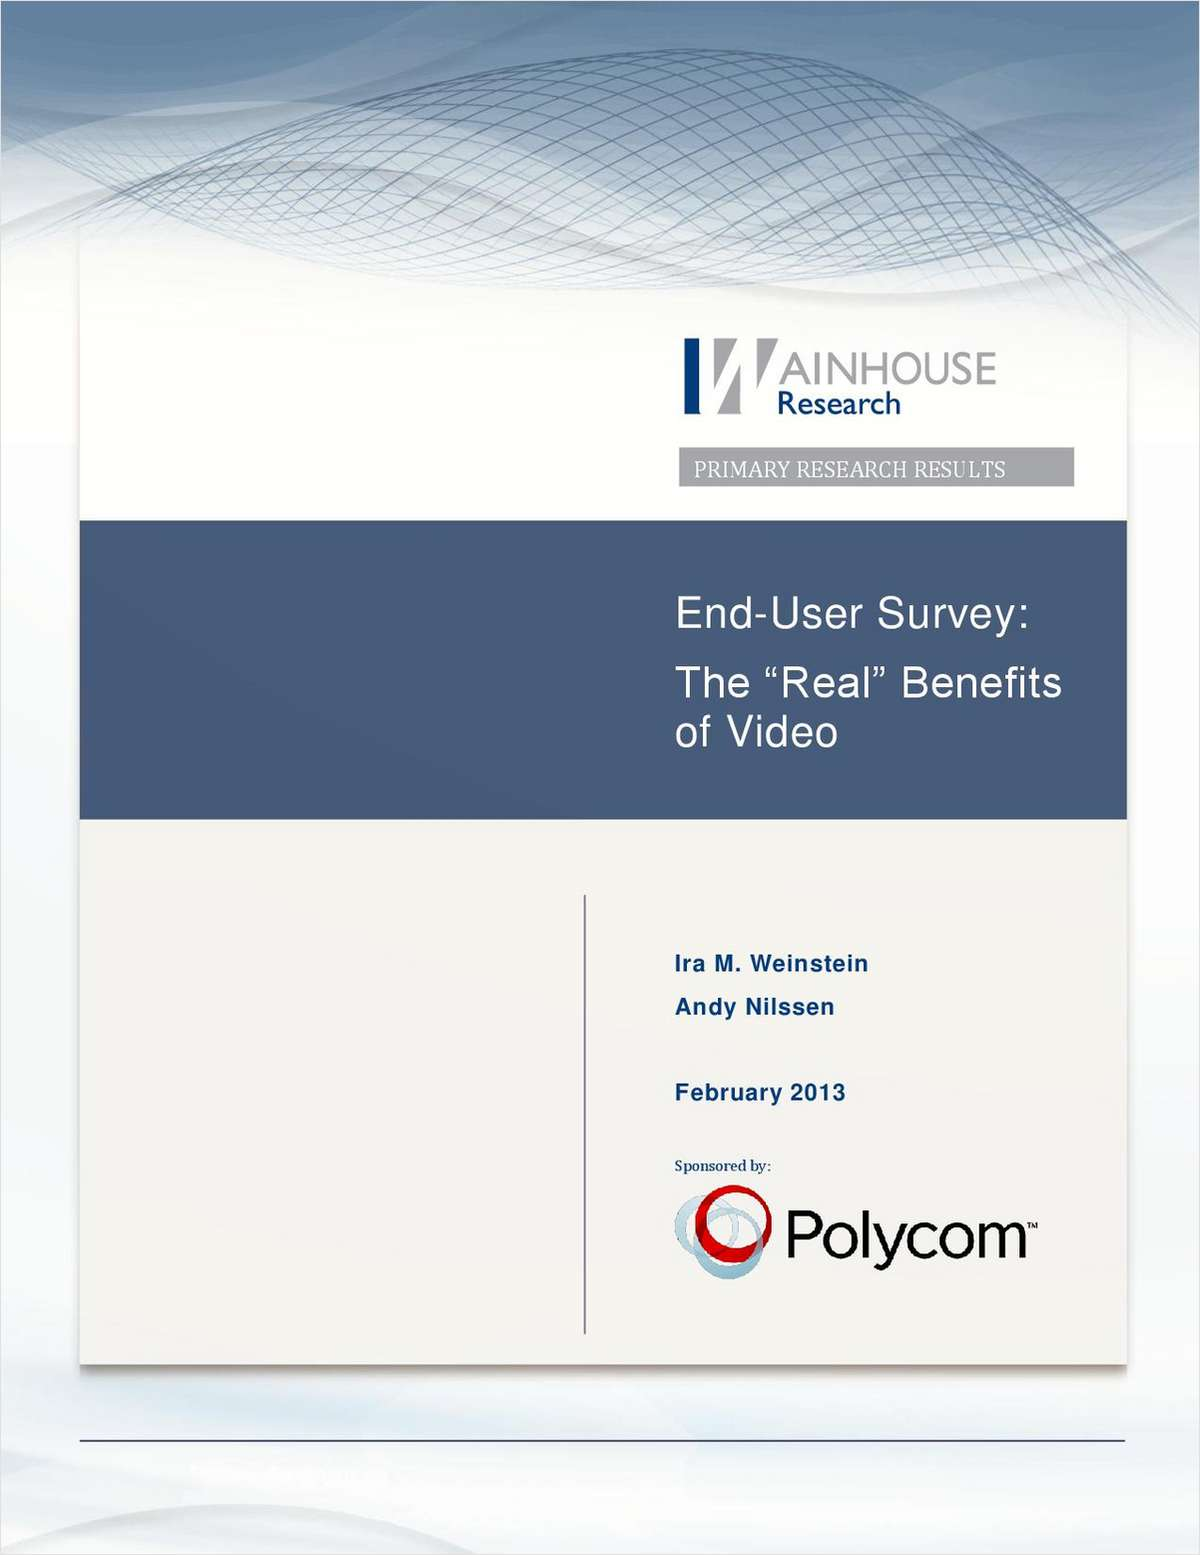 End-User Survey: The 'Real' Benefits of Video